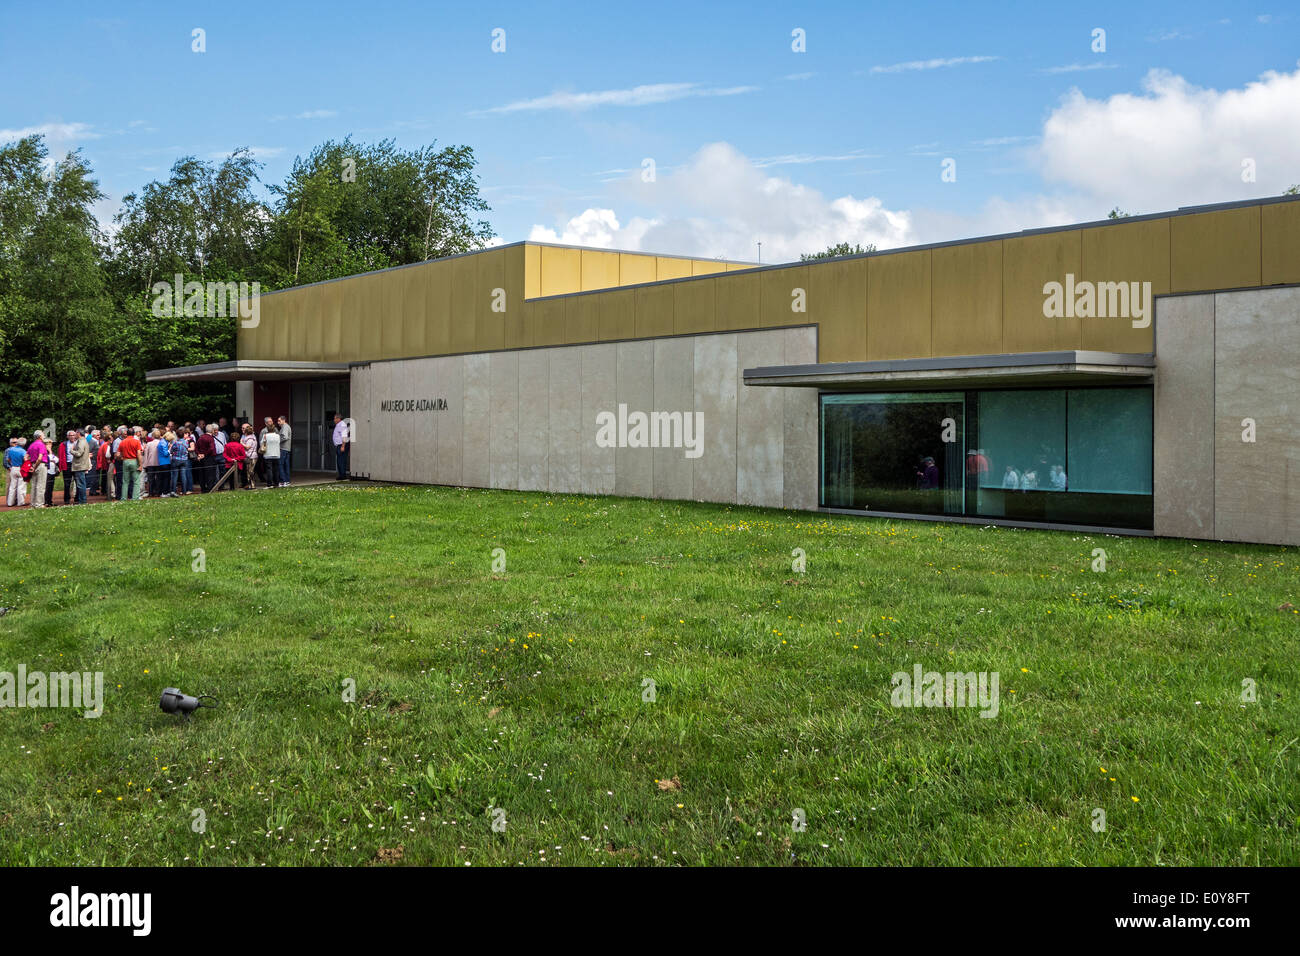 Tourists waiting at the entrance of the National Museum and Research Center of Altamira, Santillana del Mar, Cantabria, Spain - Stock Image